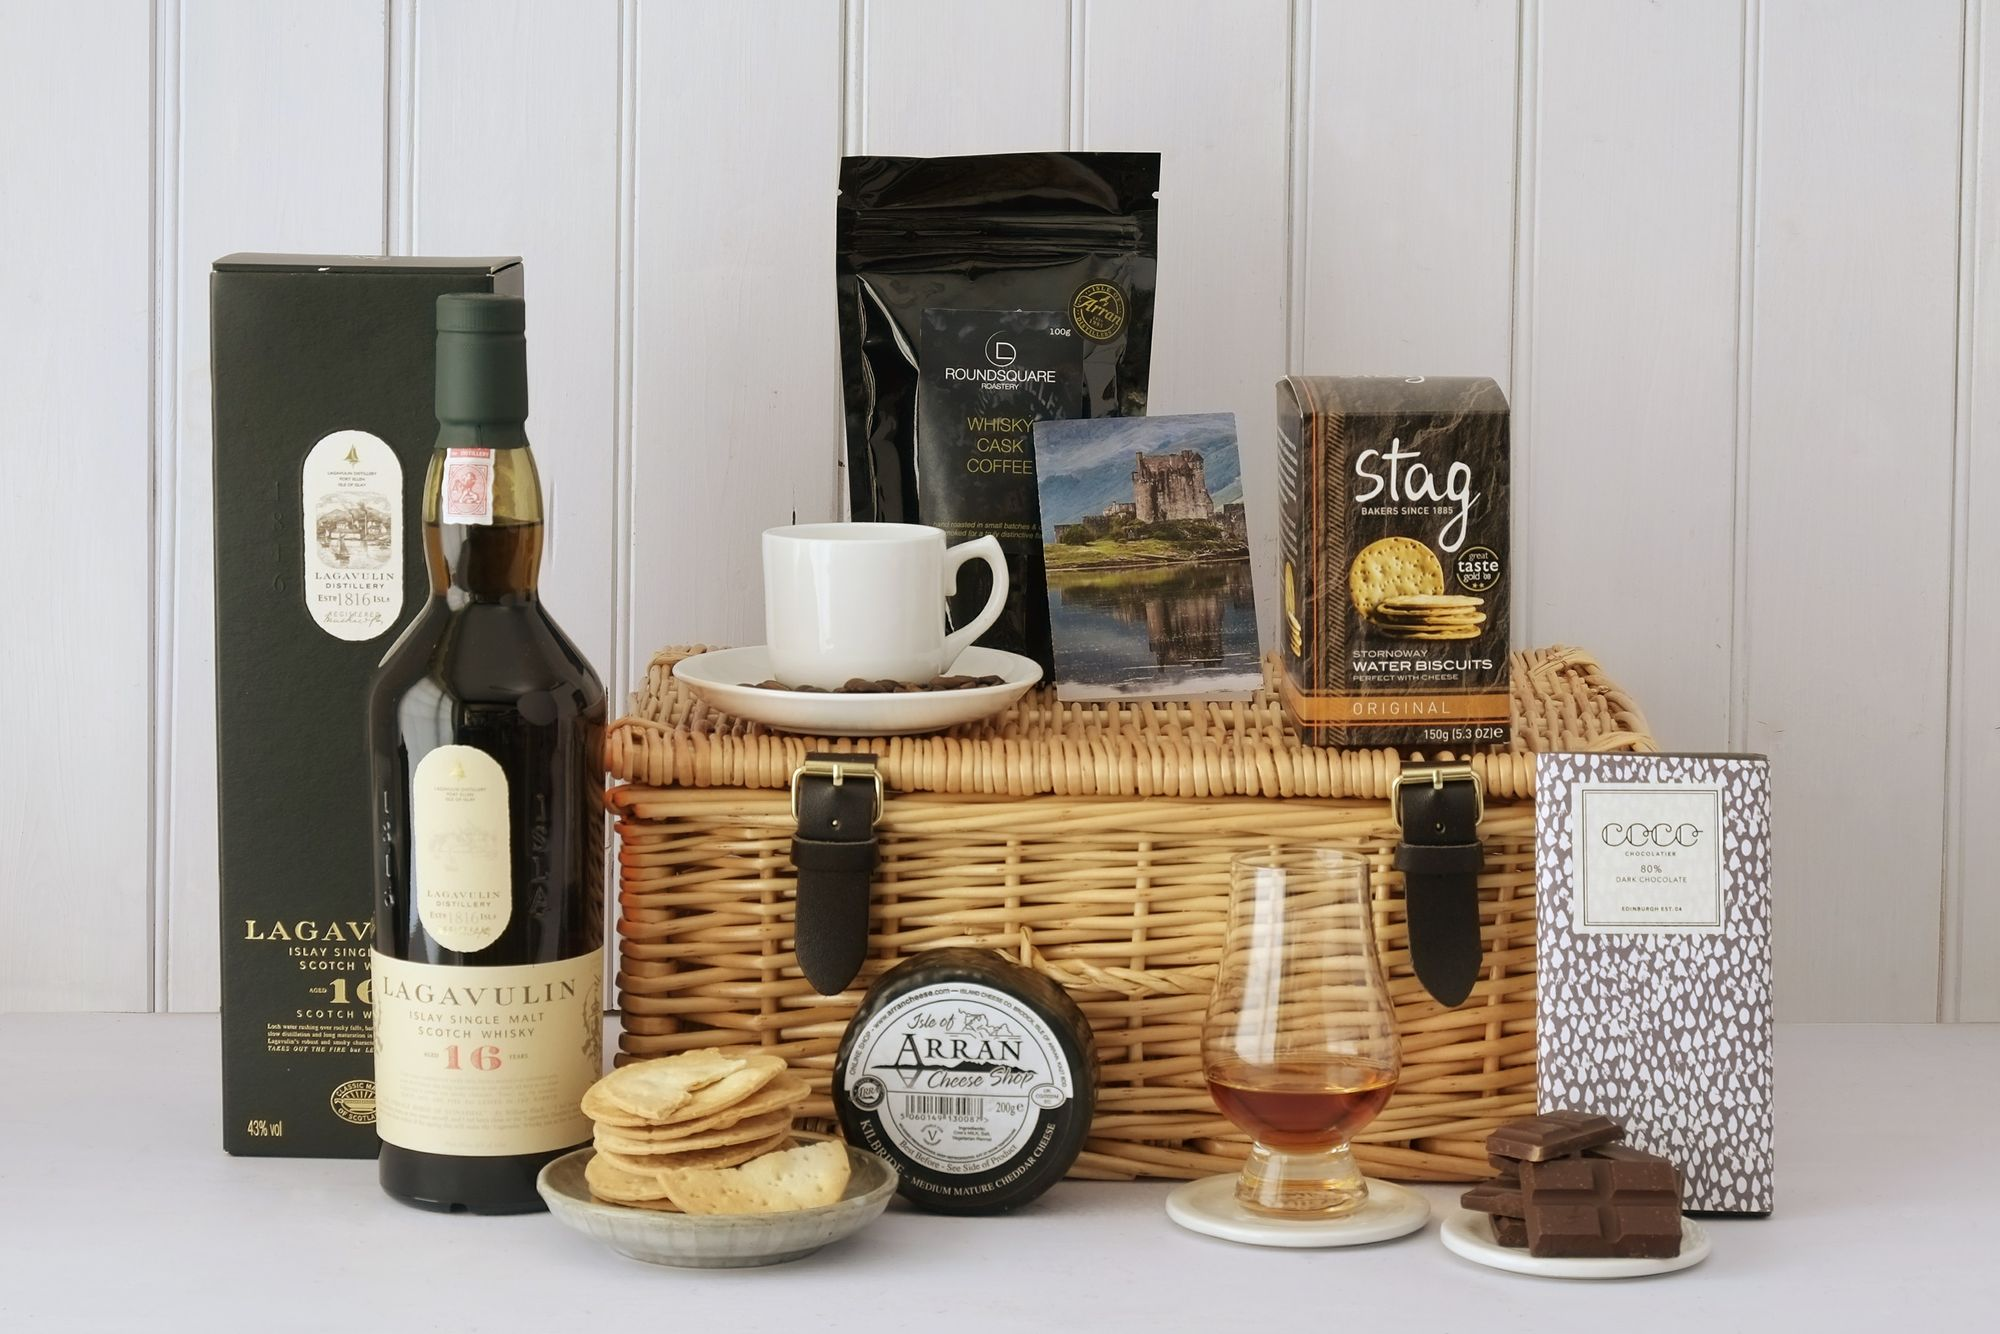 LAGAVULIN WHISKY GIFT HAMPER